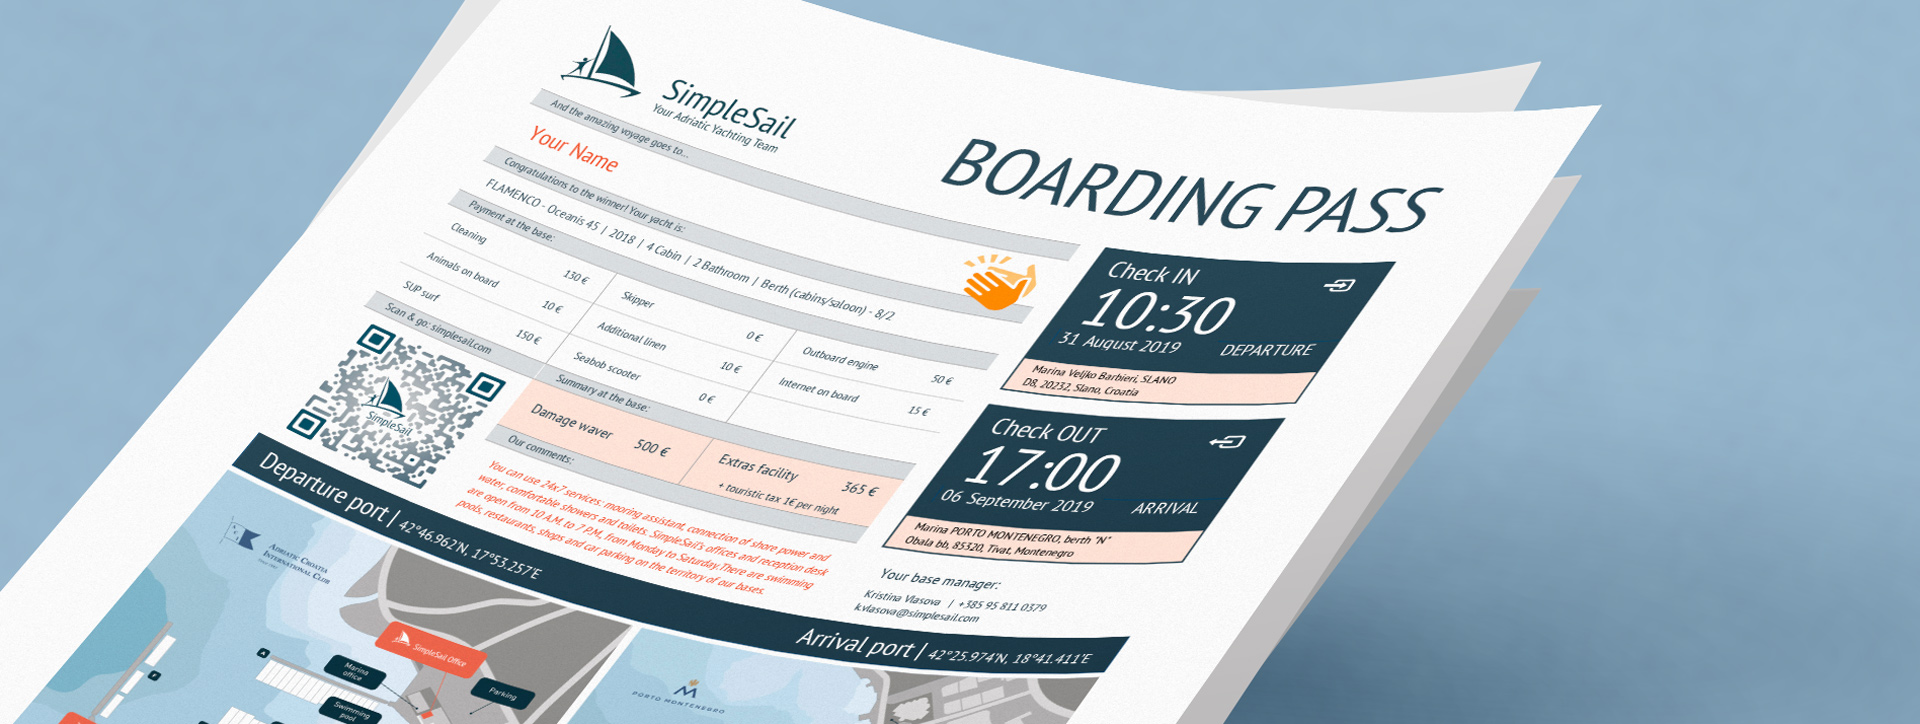 SimpleSail Boarding Pass